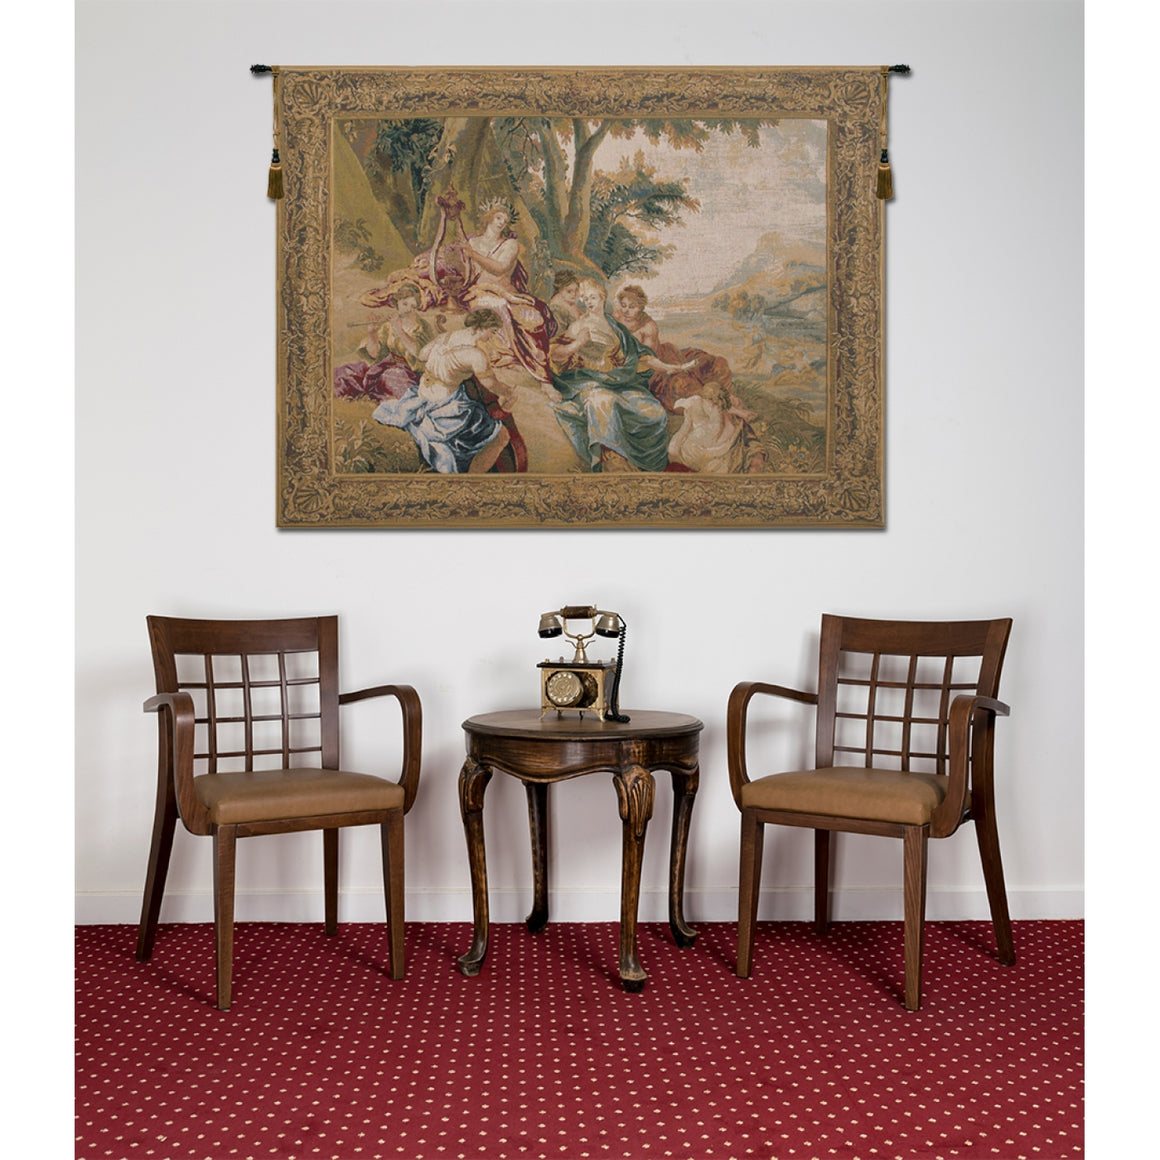 Apollo II European Wall Hanging Tapestry